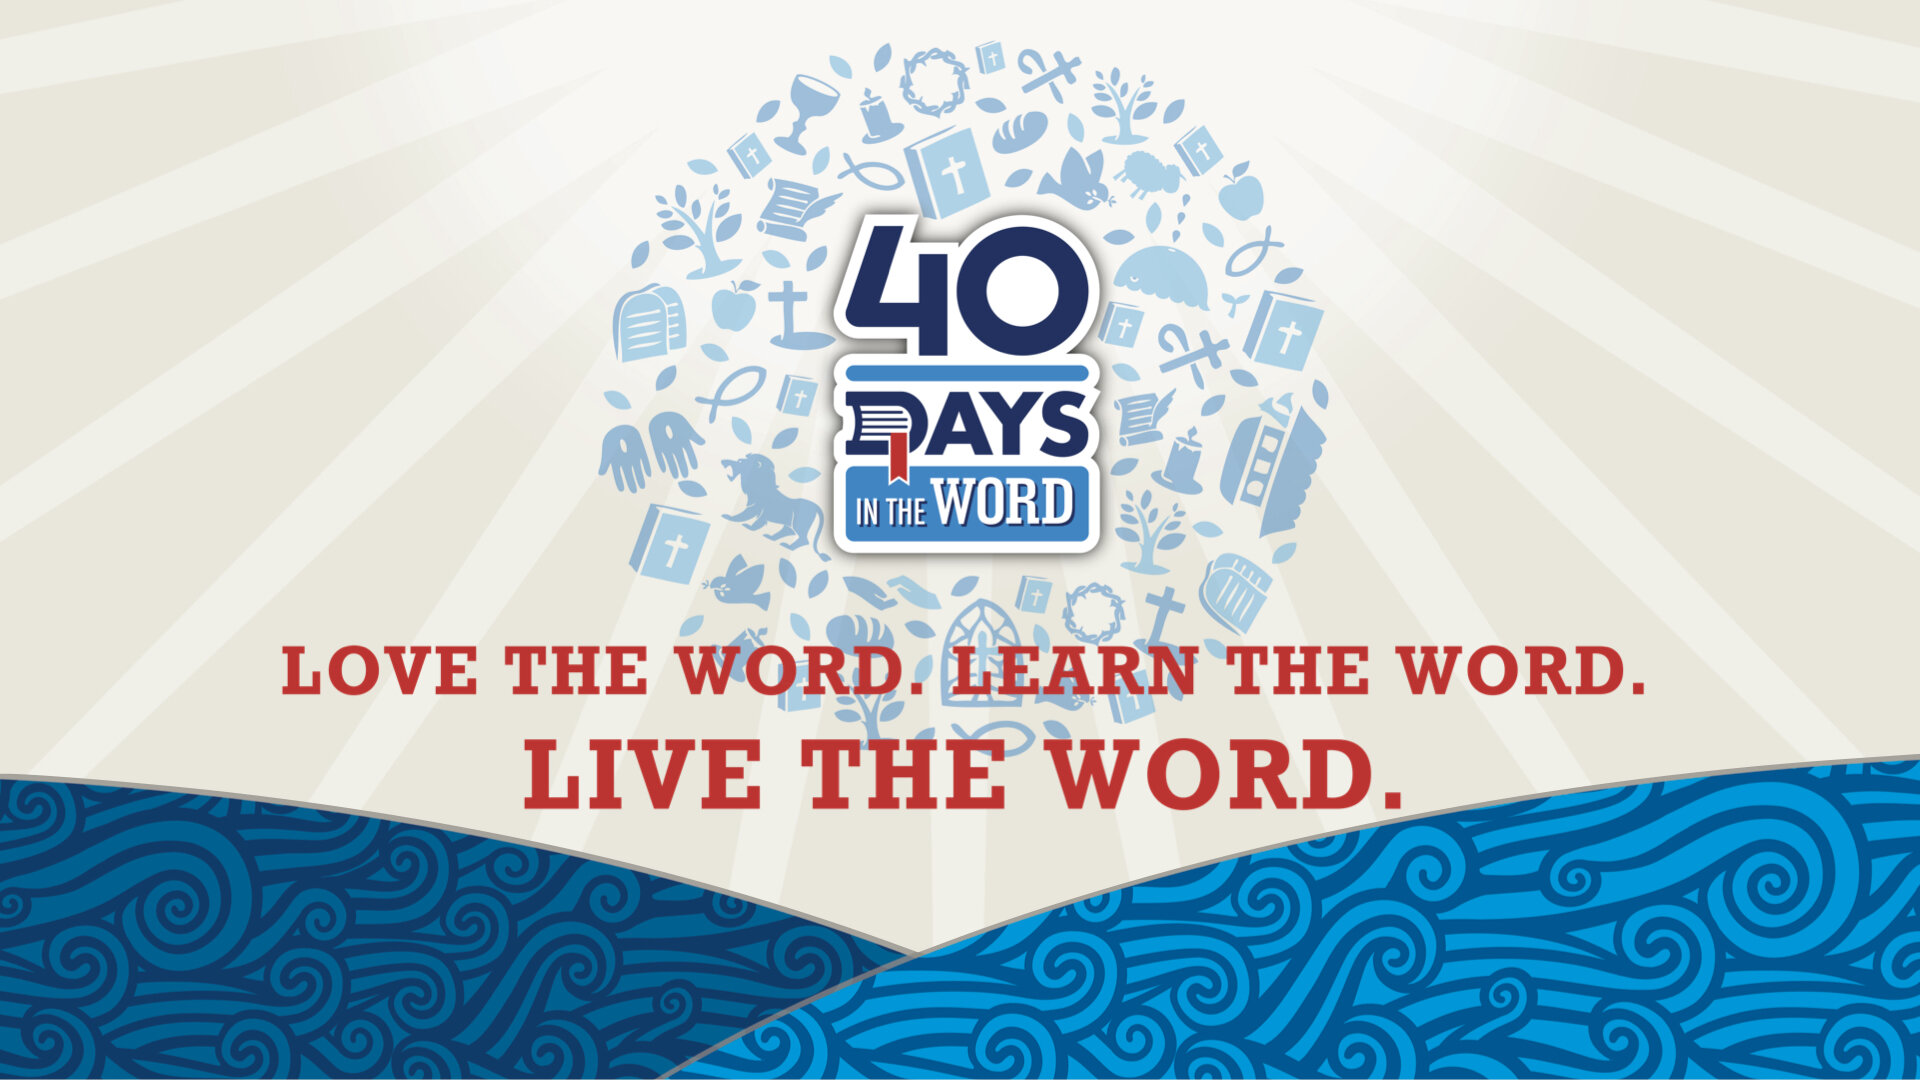 40 DAYS IN THE WORD | SERIES - BUILDING MY LIFE ON THE BIBLE | 10.06.2019 | WATCH | LISTENWHY CAN I TRUST THE BIBLE? | 10.13.2019 | WATCH | LISTENHOW THE BIBLE CHANGES US | 10.20.2019 | WATCH | LISTENSEEING WHAT GOD WANTS ME TO SEE | 10.27.2019 | WATCH | LISTENHOW TO STUDY A BIBLE PASSAGE | 11.3.2019 | WATCH | LISTENUNDERSTANDING THE MEANING OF A TEXT | 11.10.2019 | WATCH | LISTENINTEGRATING GOD'S WORD INTO MY LIFE | 11.17.2019 | WATCH | LISTEN